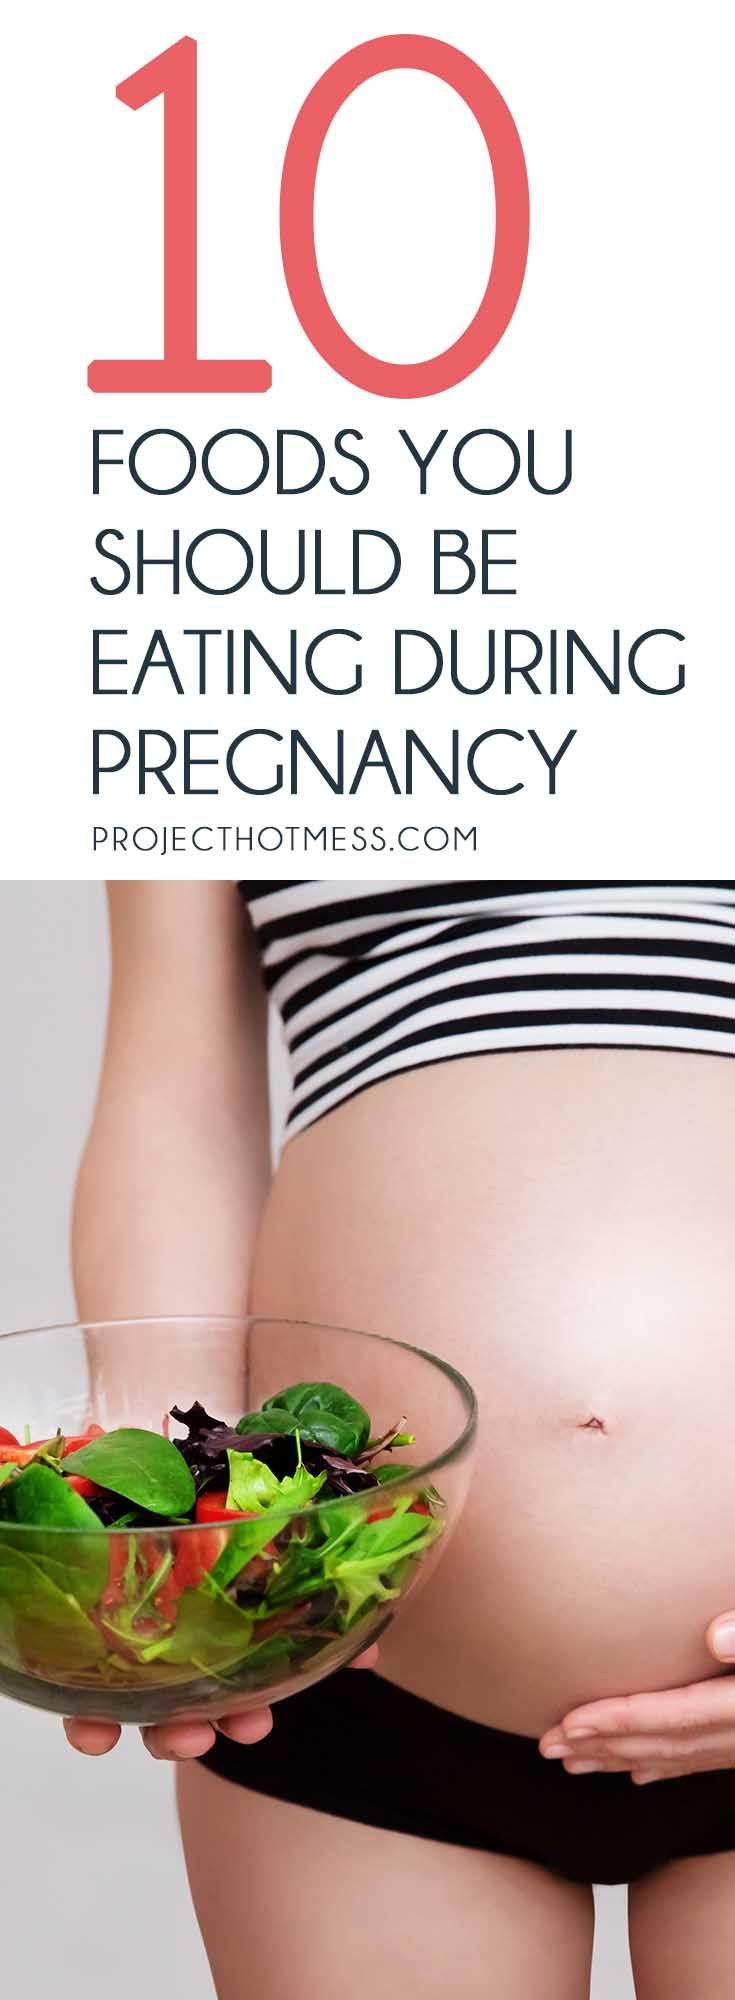 There's a whole big list of foods you can't eat, but have you considered the foods you should be eating during pregnancy? They're super tasty and nutritious too.     Pregnancy | Pregnant | Nutrition | Food | Pregnant Woman | First Pregnancy | New Mom | Being Pregnant | Maternity | Early Pregnancy | First Trimester | Second Trimester  via @project_hotmess